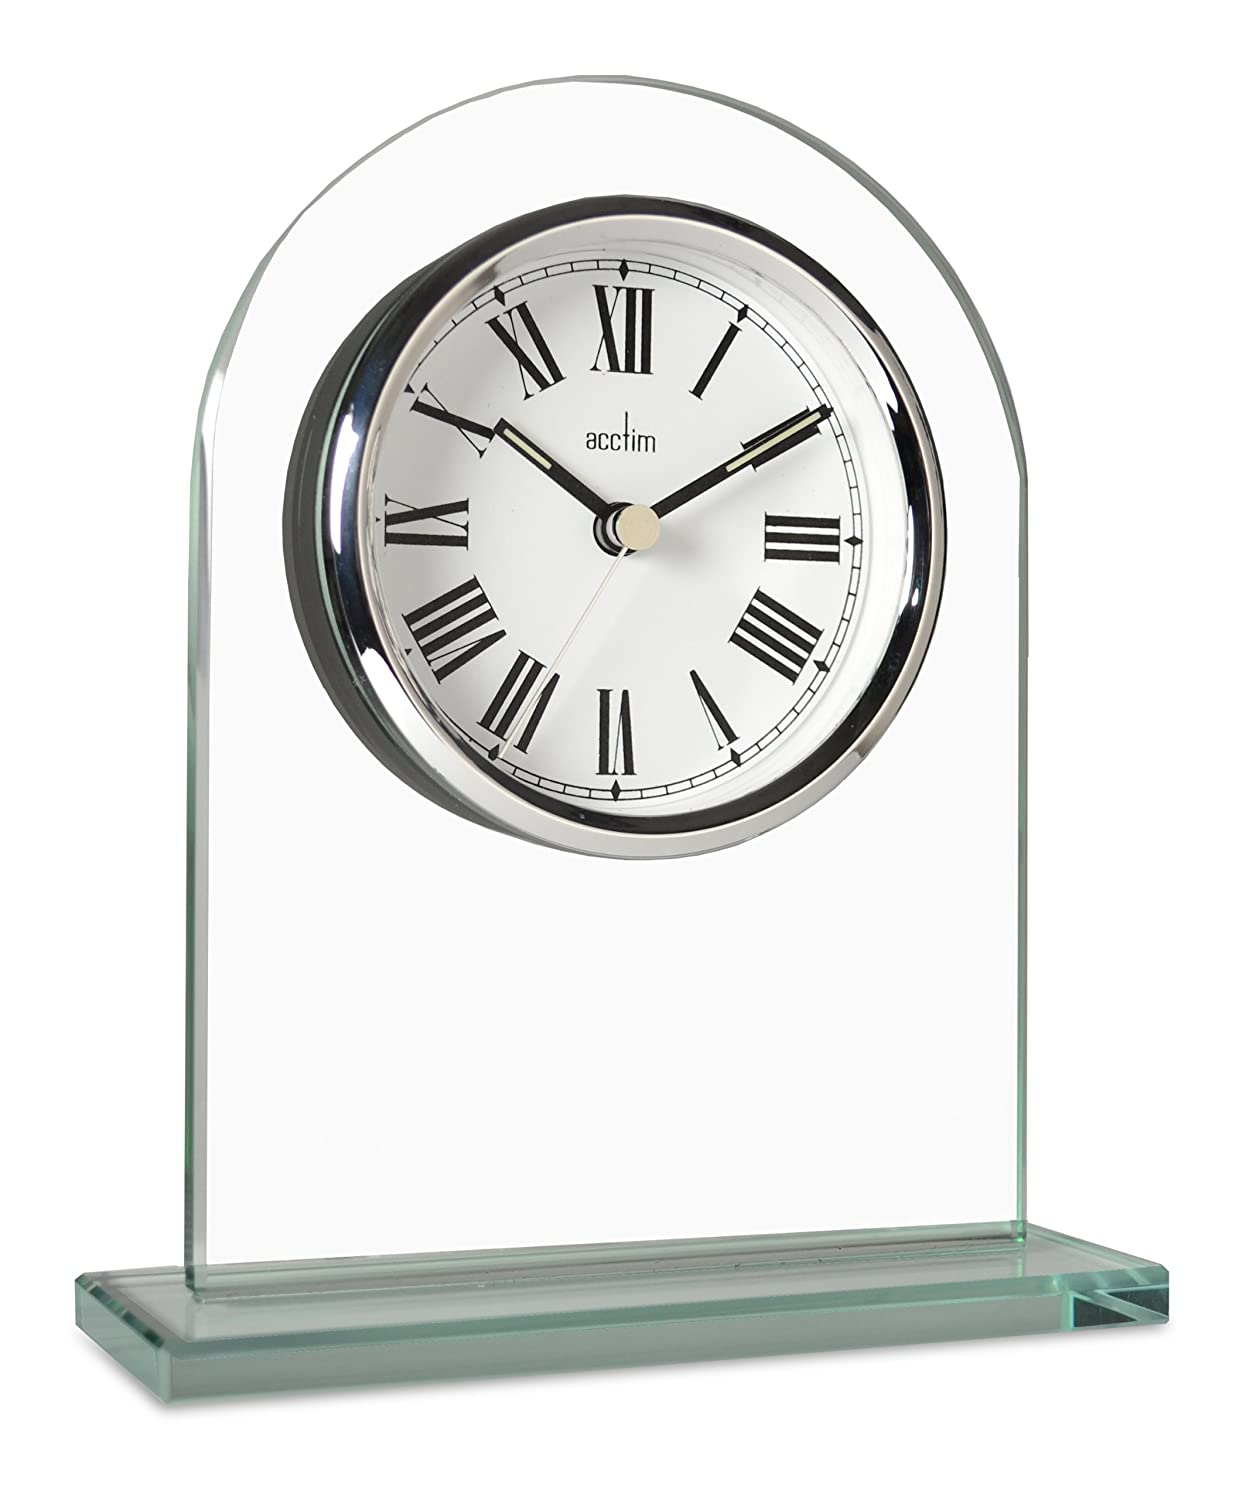 Acctim 36537 Adelaide Mantel Clock, Glass